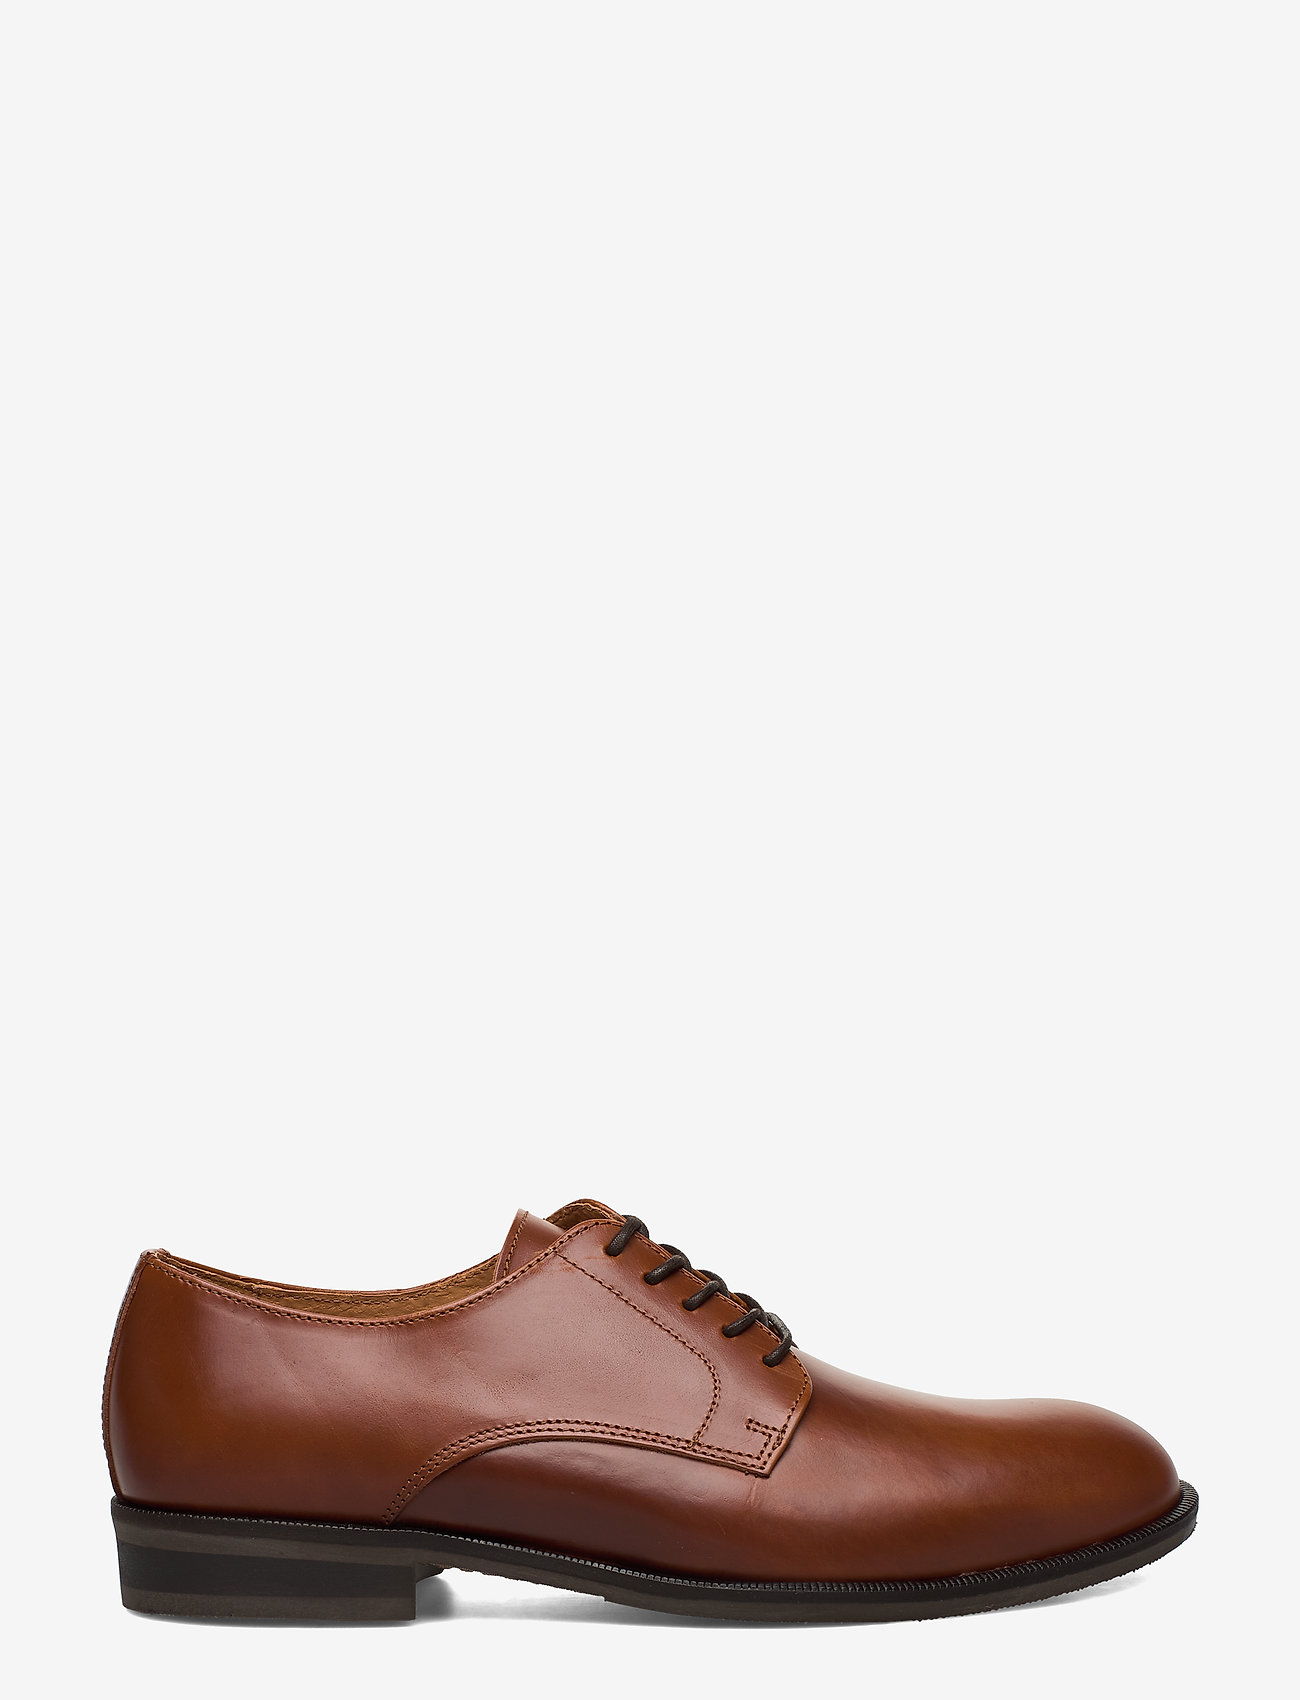 Selected Homme - SLHLOUIS LEATHER DERBY SHOE B NOOS - snøresko - cognac - 1